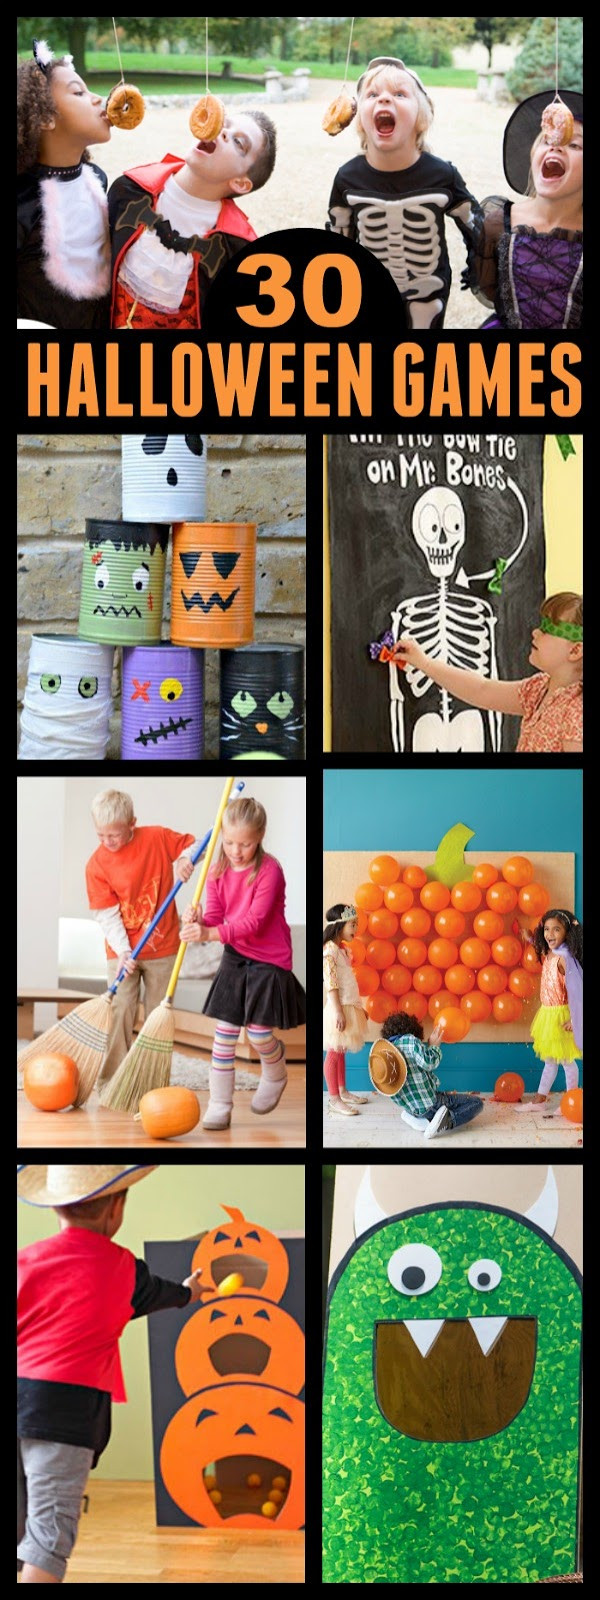 Halloween Party Games Ideas For Teenagers  Halloween Games for Kids